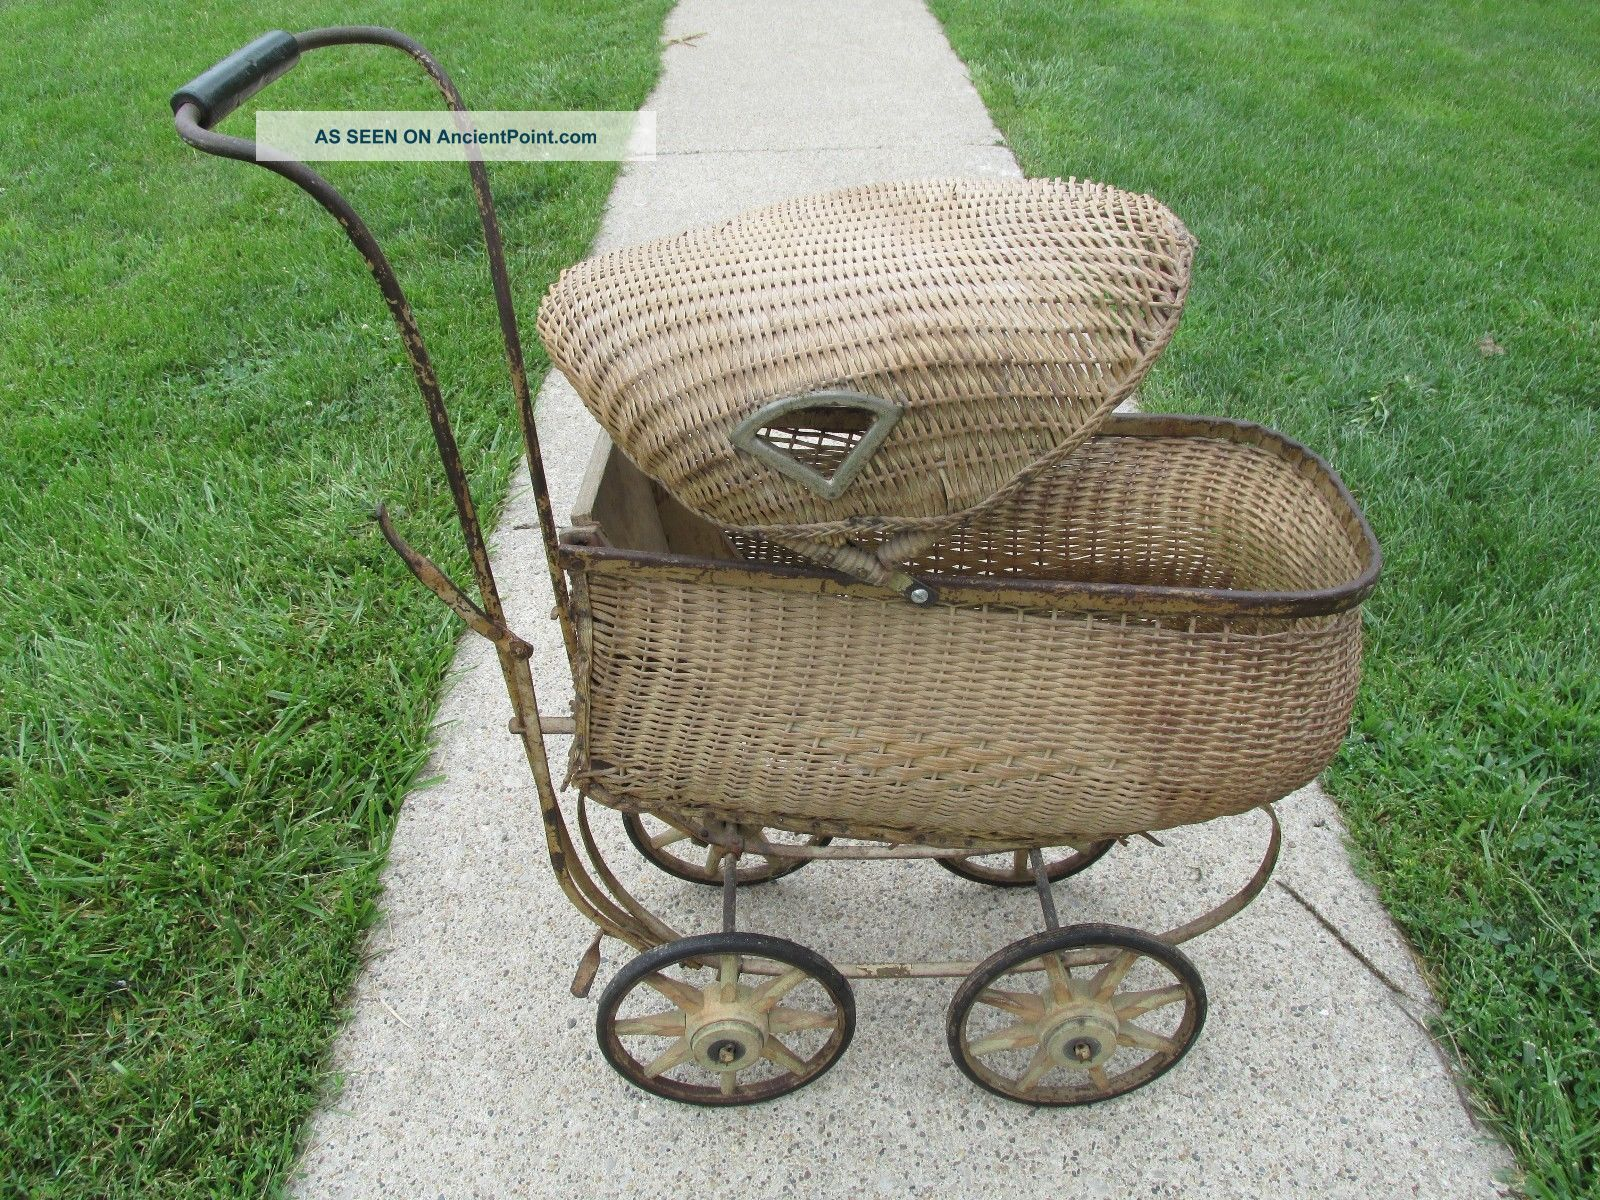 Antique Baby Carriage Wicker Baby Pram 1800s Vintage Stroller Doll Carriage Baby Carriages & Buggies photo